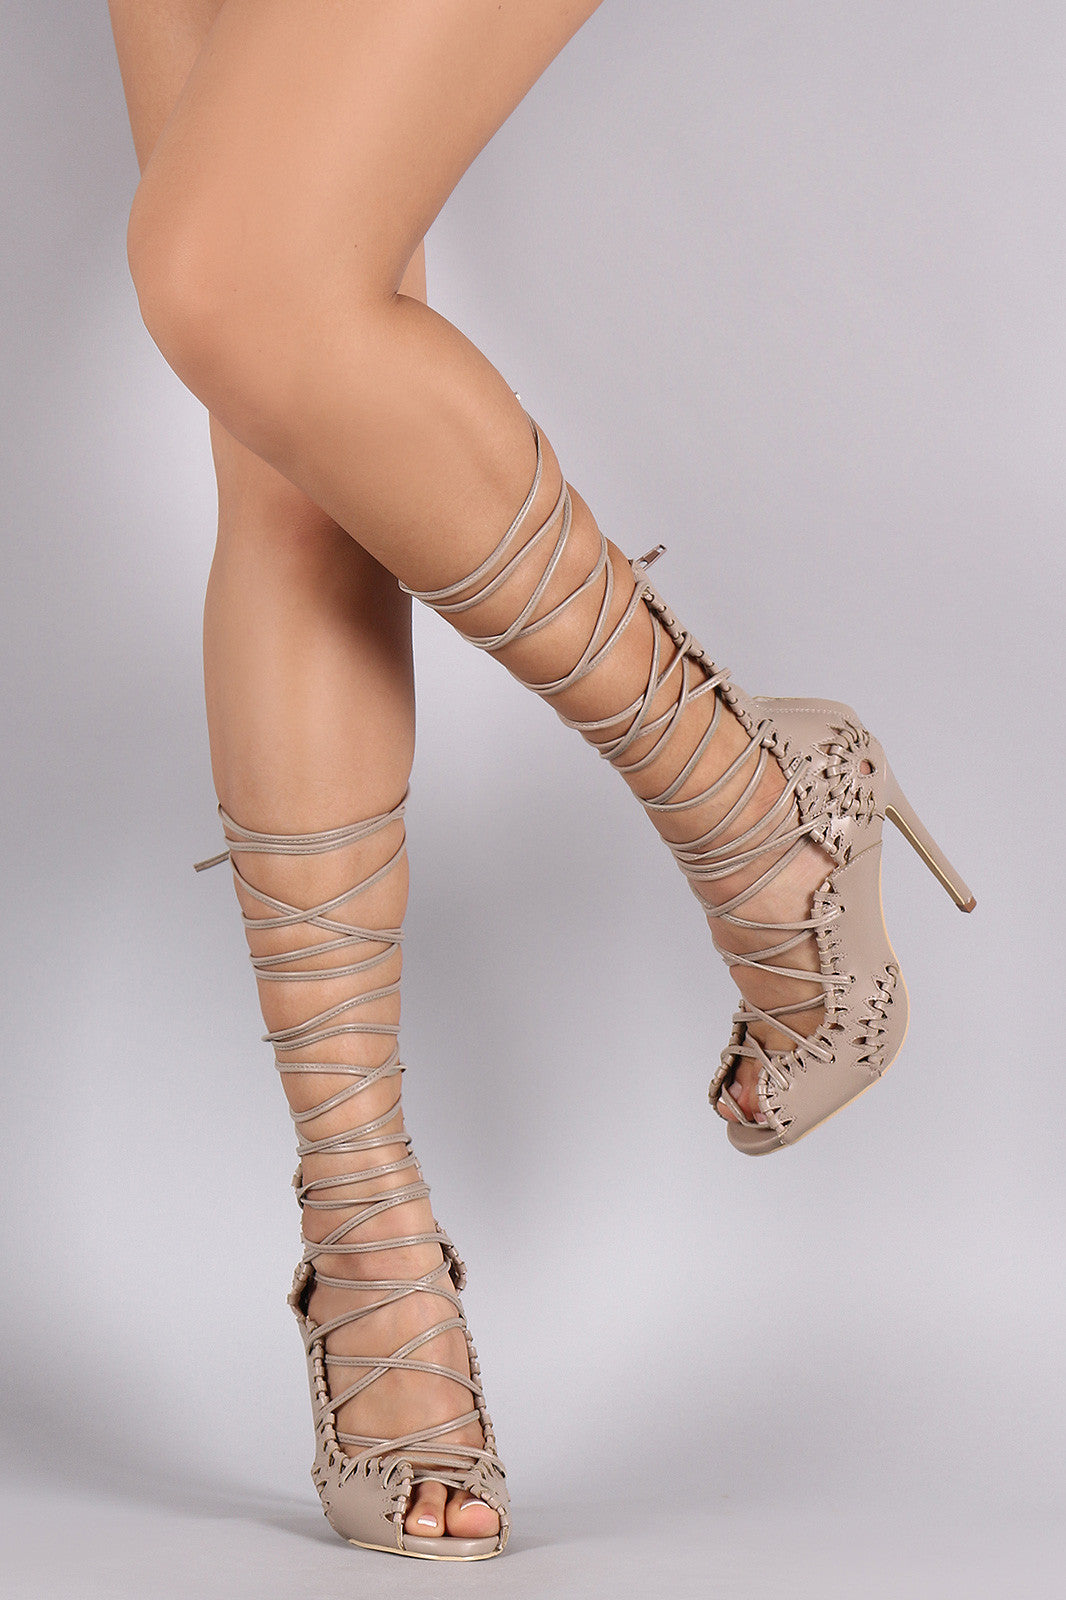 7face21c6e Privileged Intricate Cutout Corset Lace-Up Peep Toe Stiletto Heel Shoes  Open Heels ...